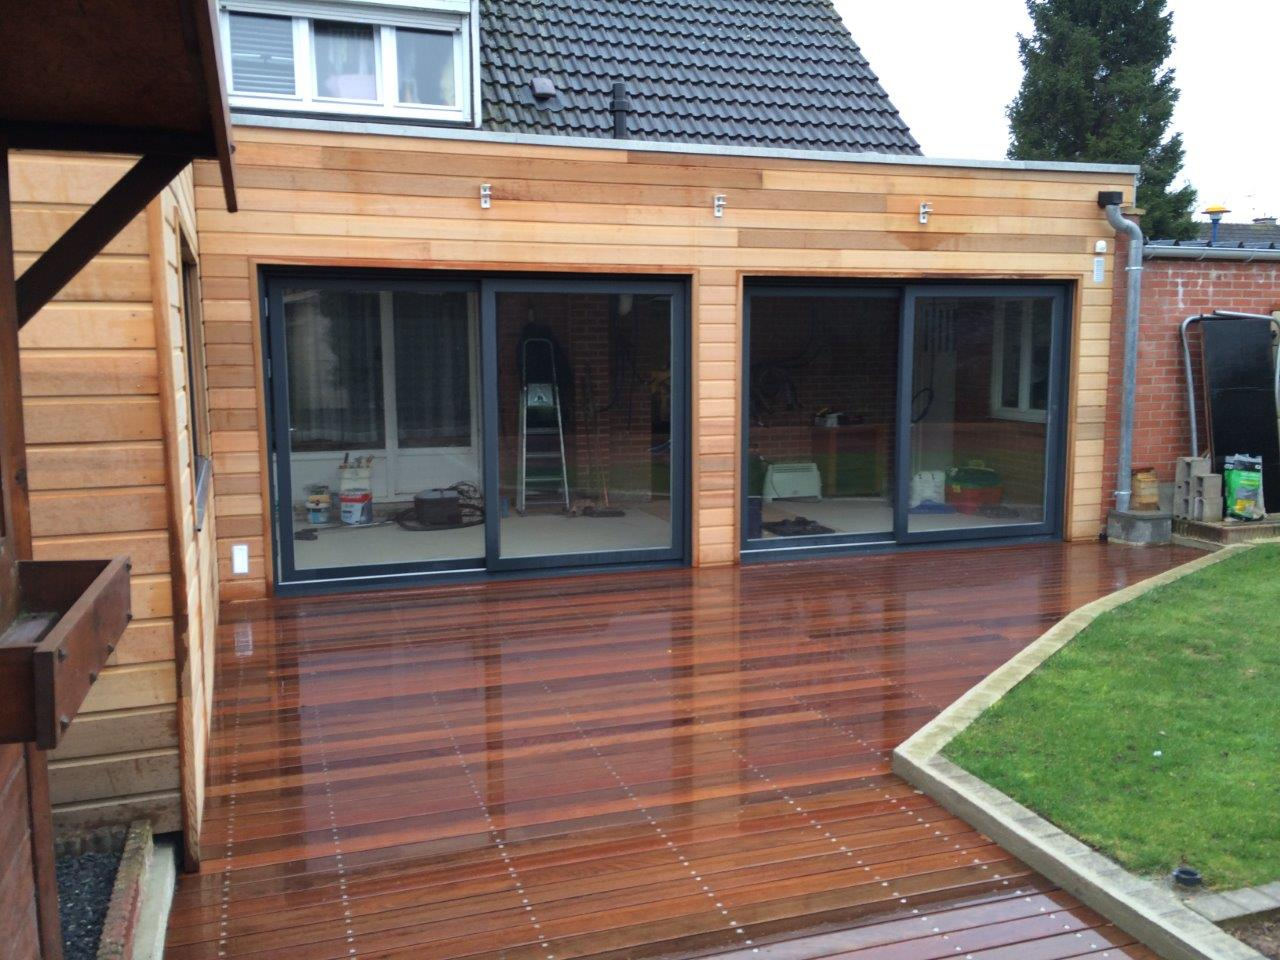 Terrasse Red Cedar Extention Bardage Red Cedar Et Terrasse Sur Plots